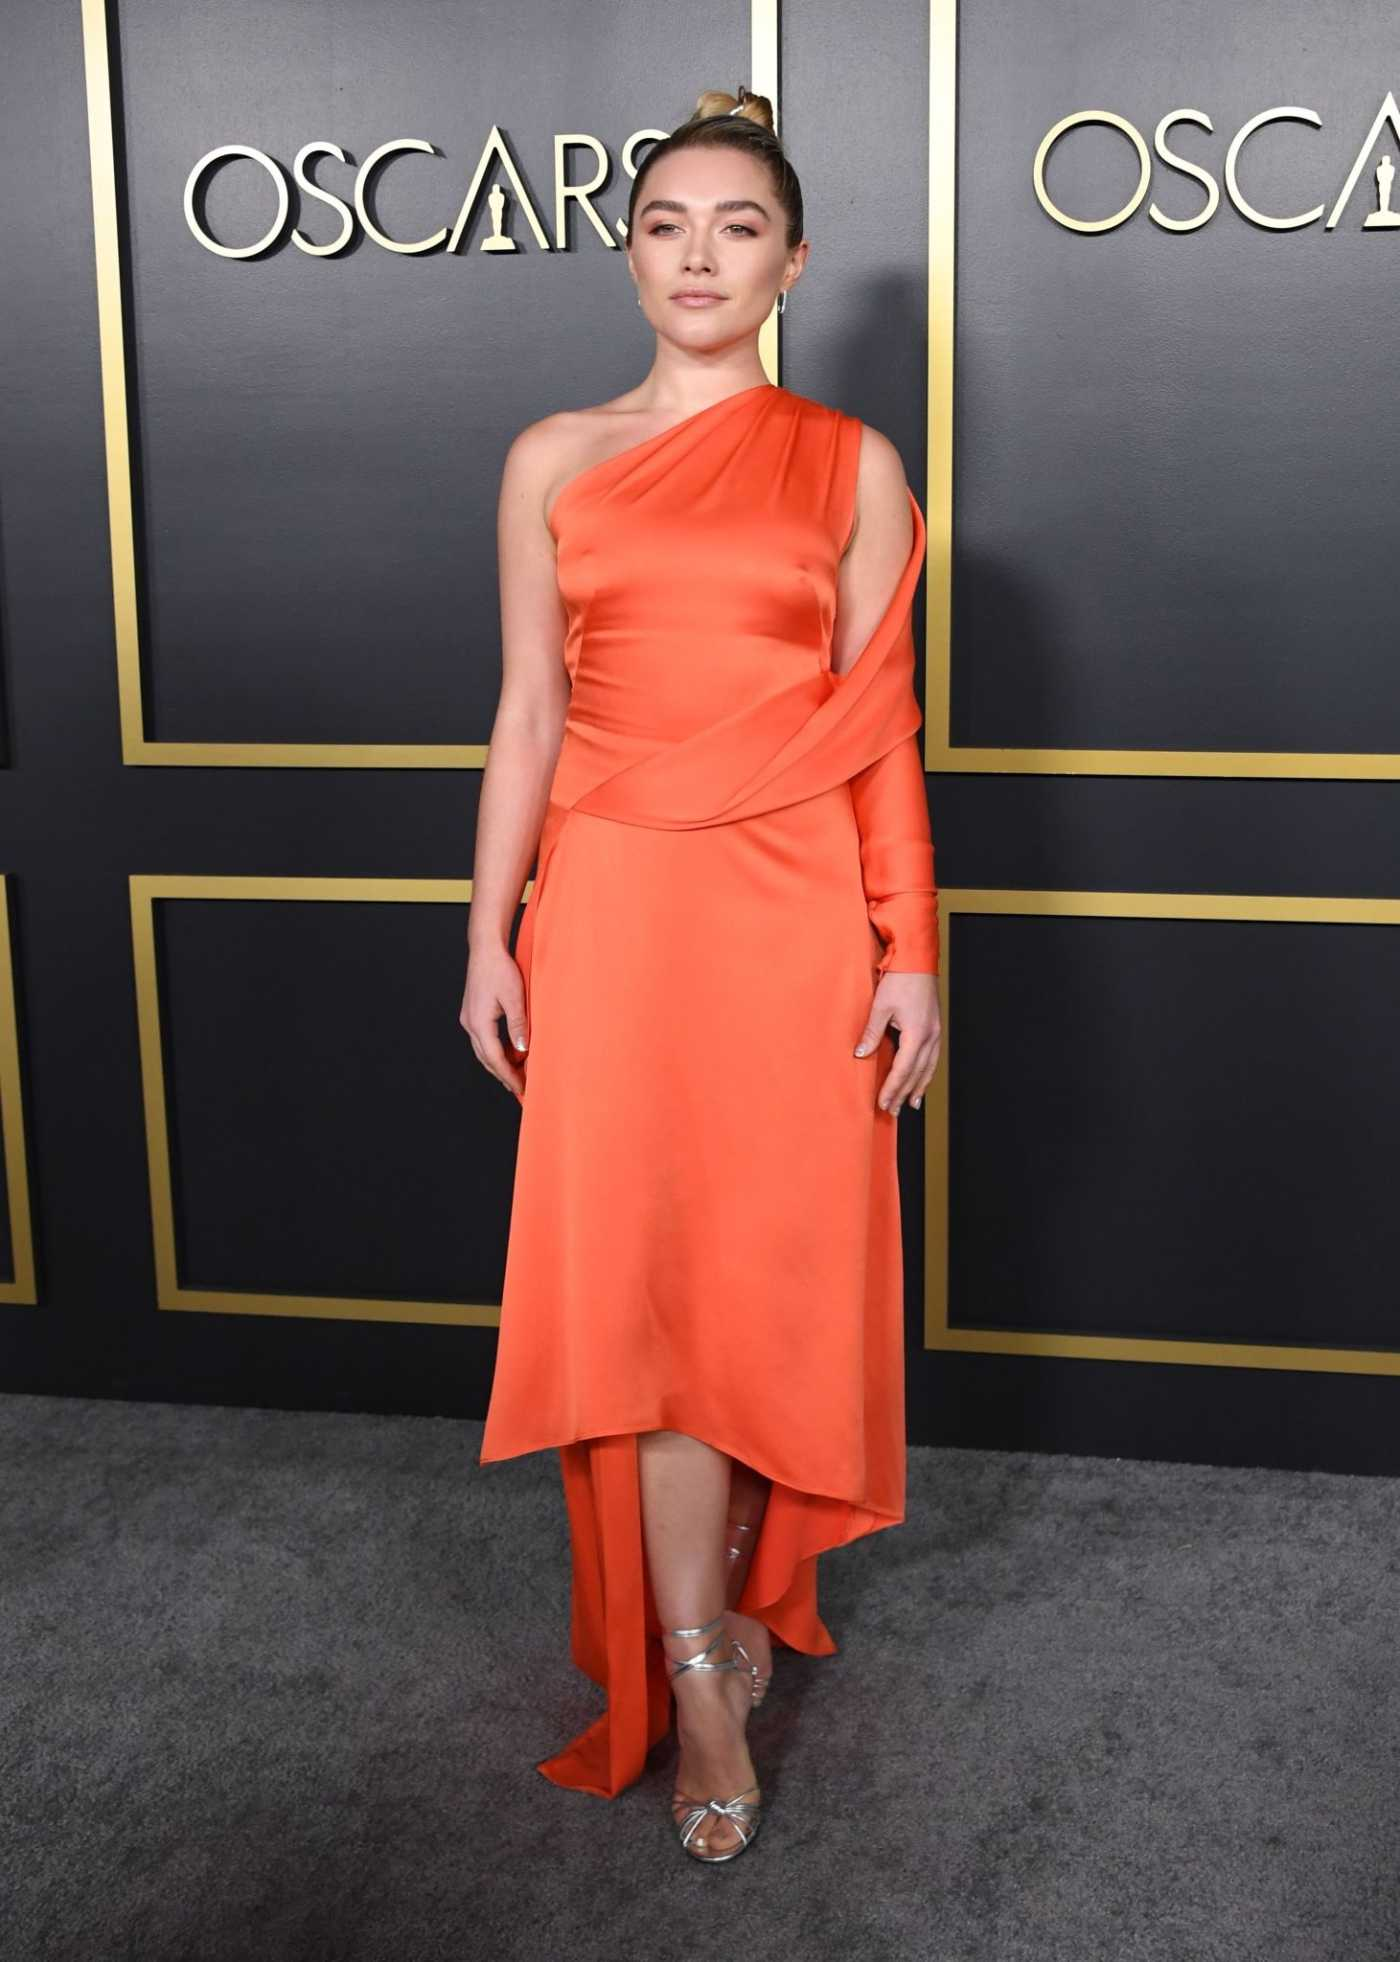 Florence Pugh Attends the 92nd Oscars Nominees Luncheon in Hollywood 01/27/2020